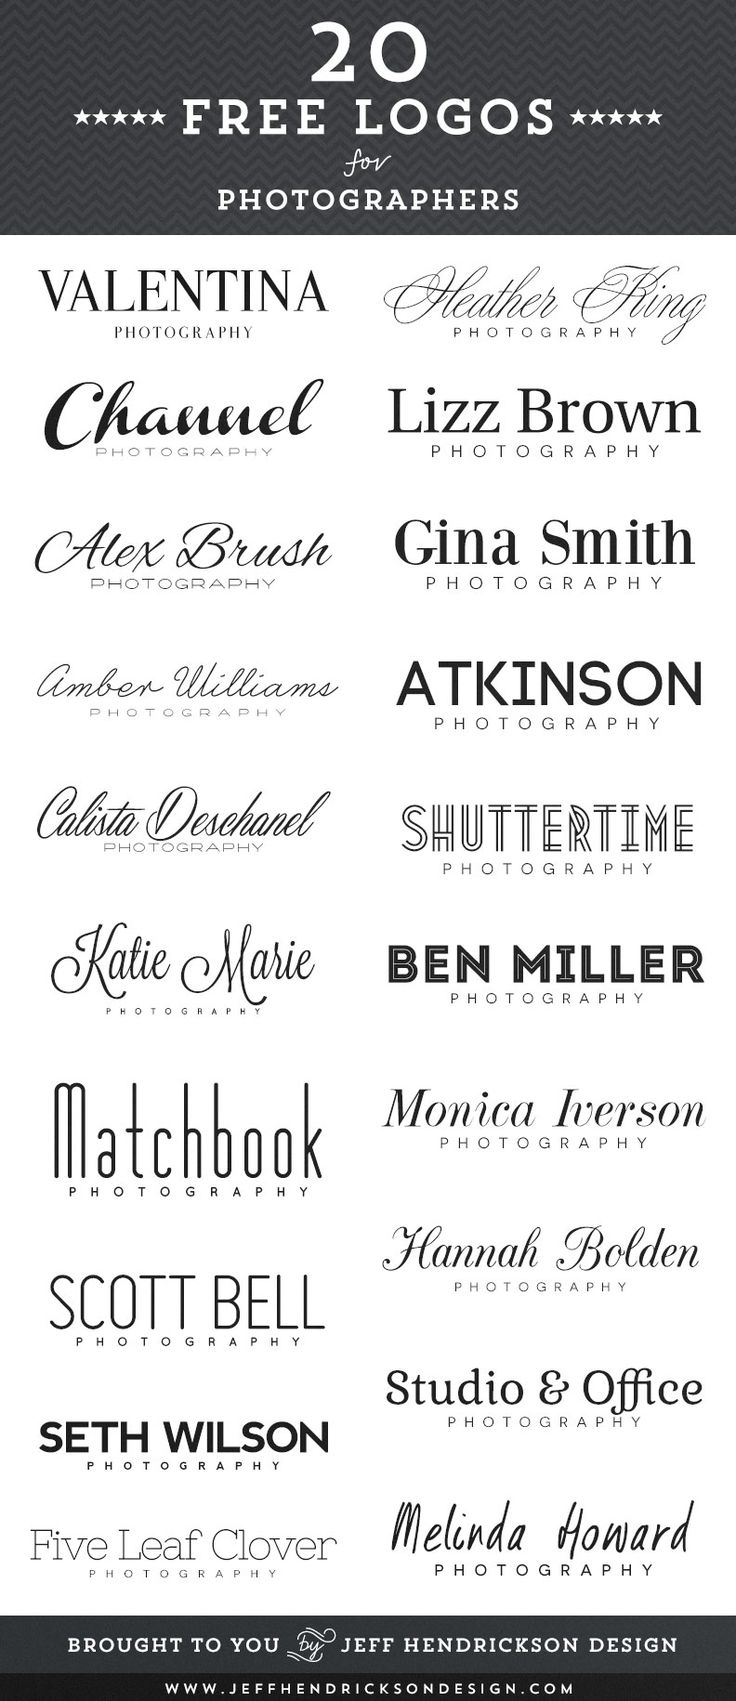 25 best ideas about photographer logo on pinterest logo